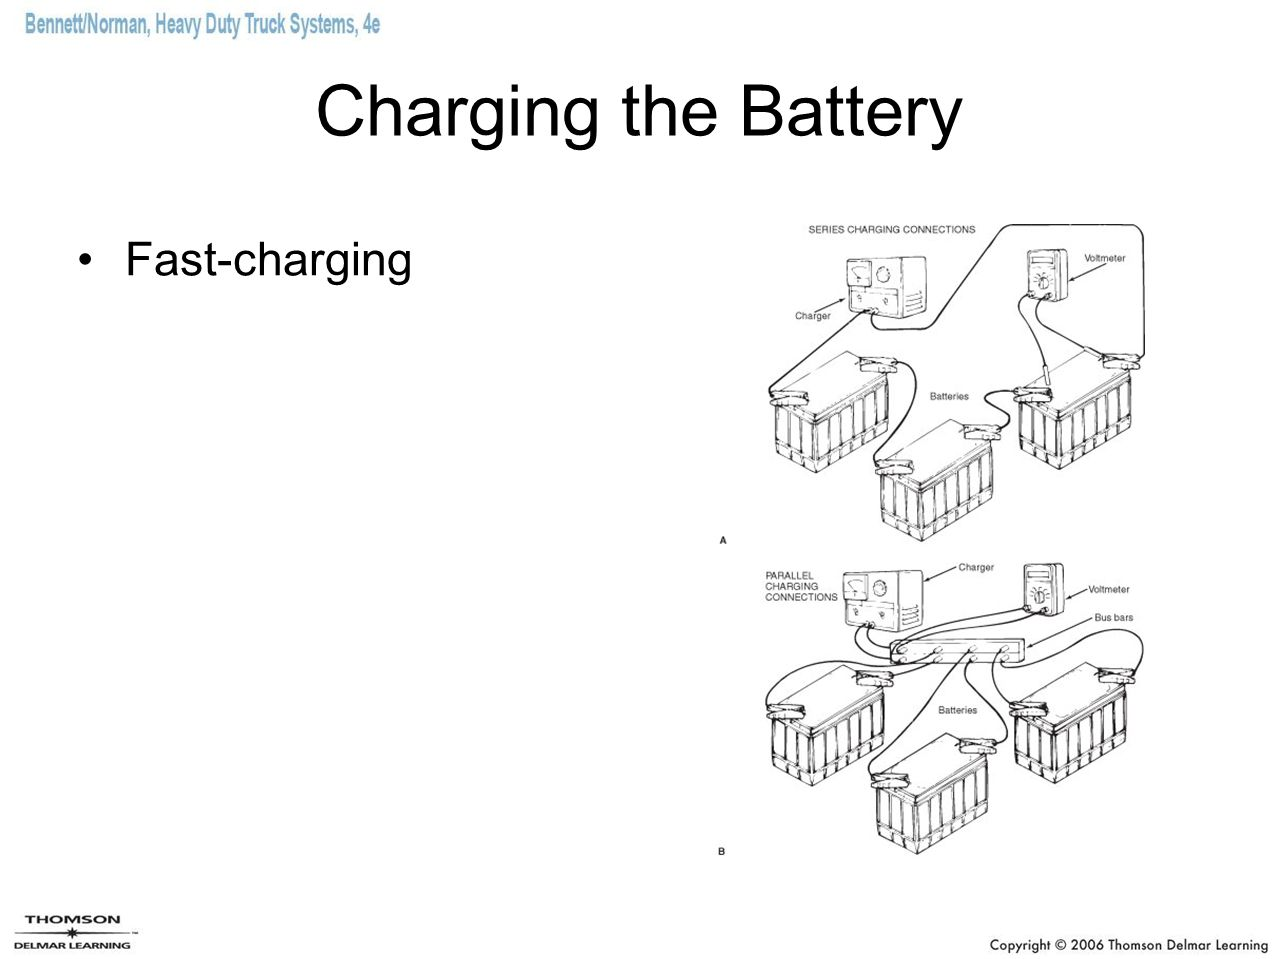 Charging the Battery Fast-charging